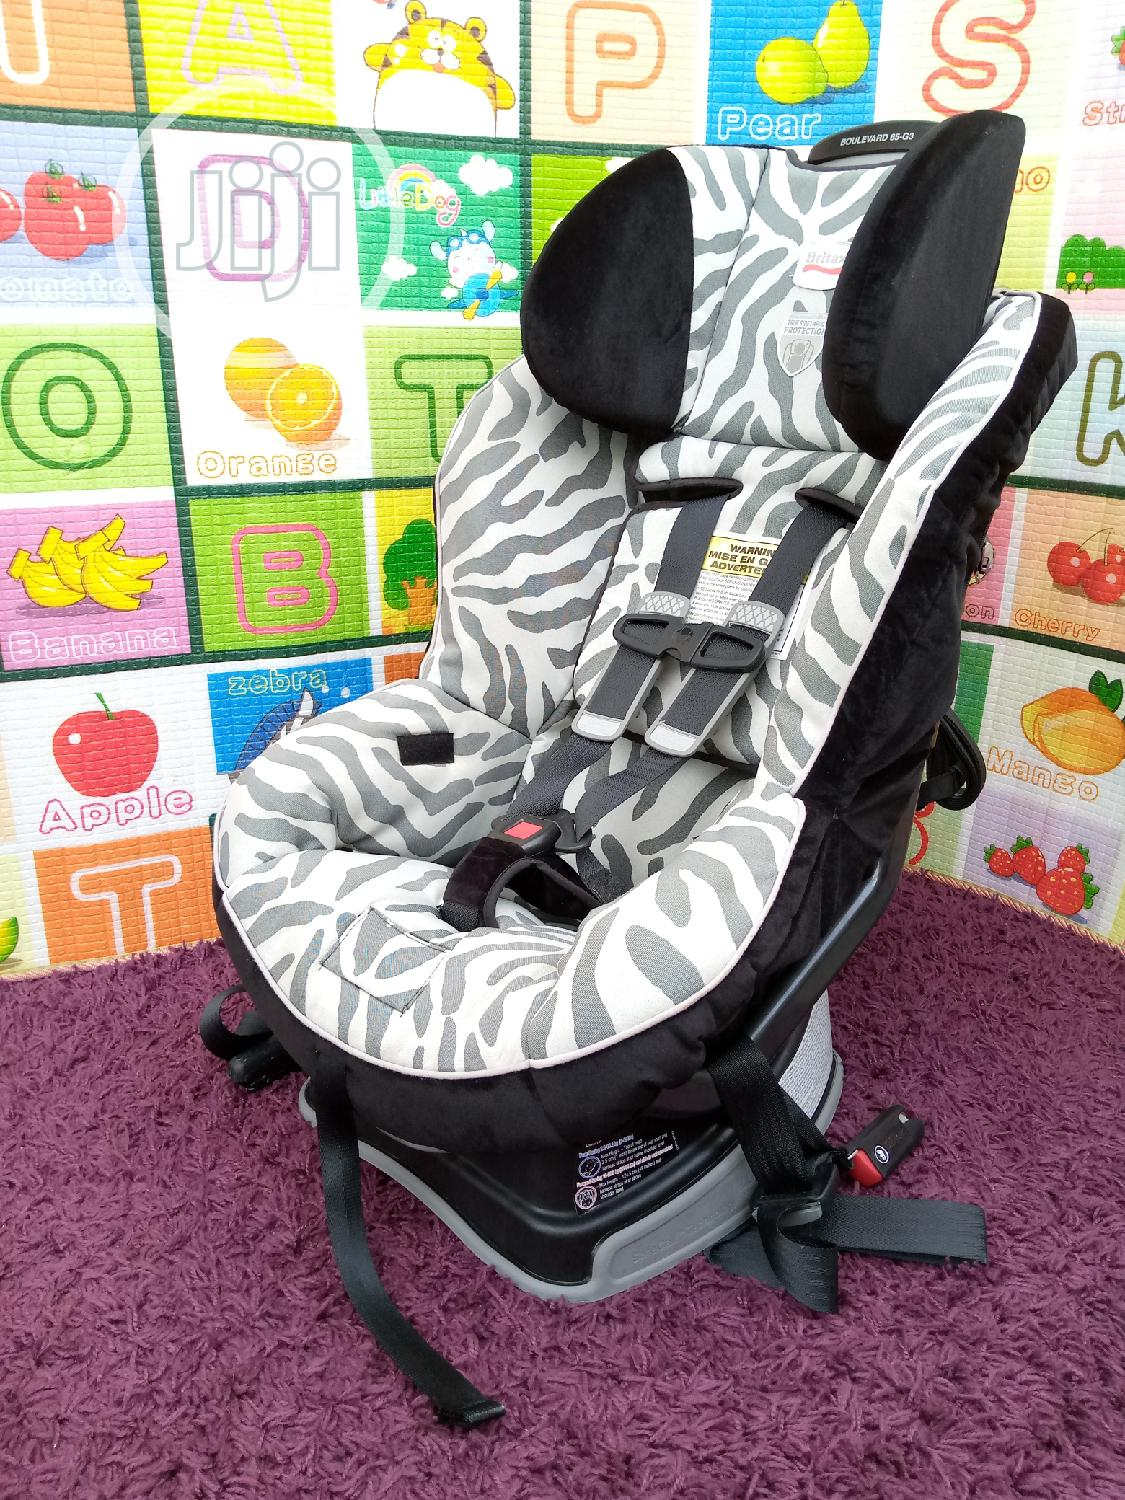 Uk Used Britax Boulevard 65 G3 Convertible Car Seat | Children's Gear & Safety for sale in Surulere, Lagos State, Nigeria